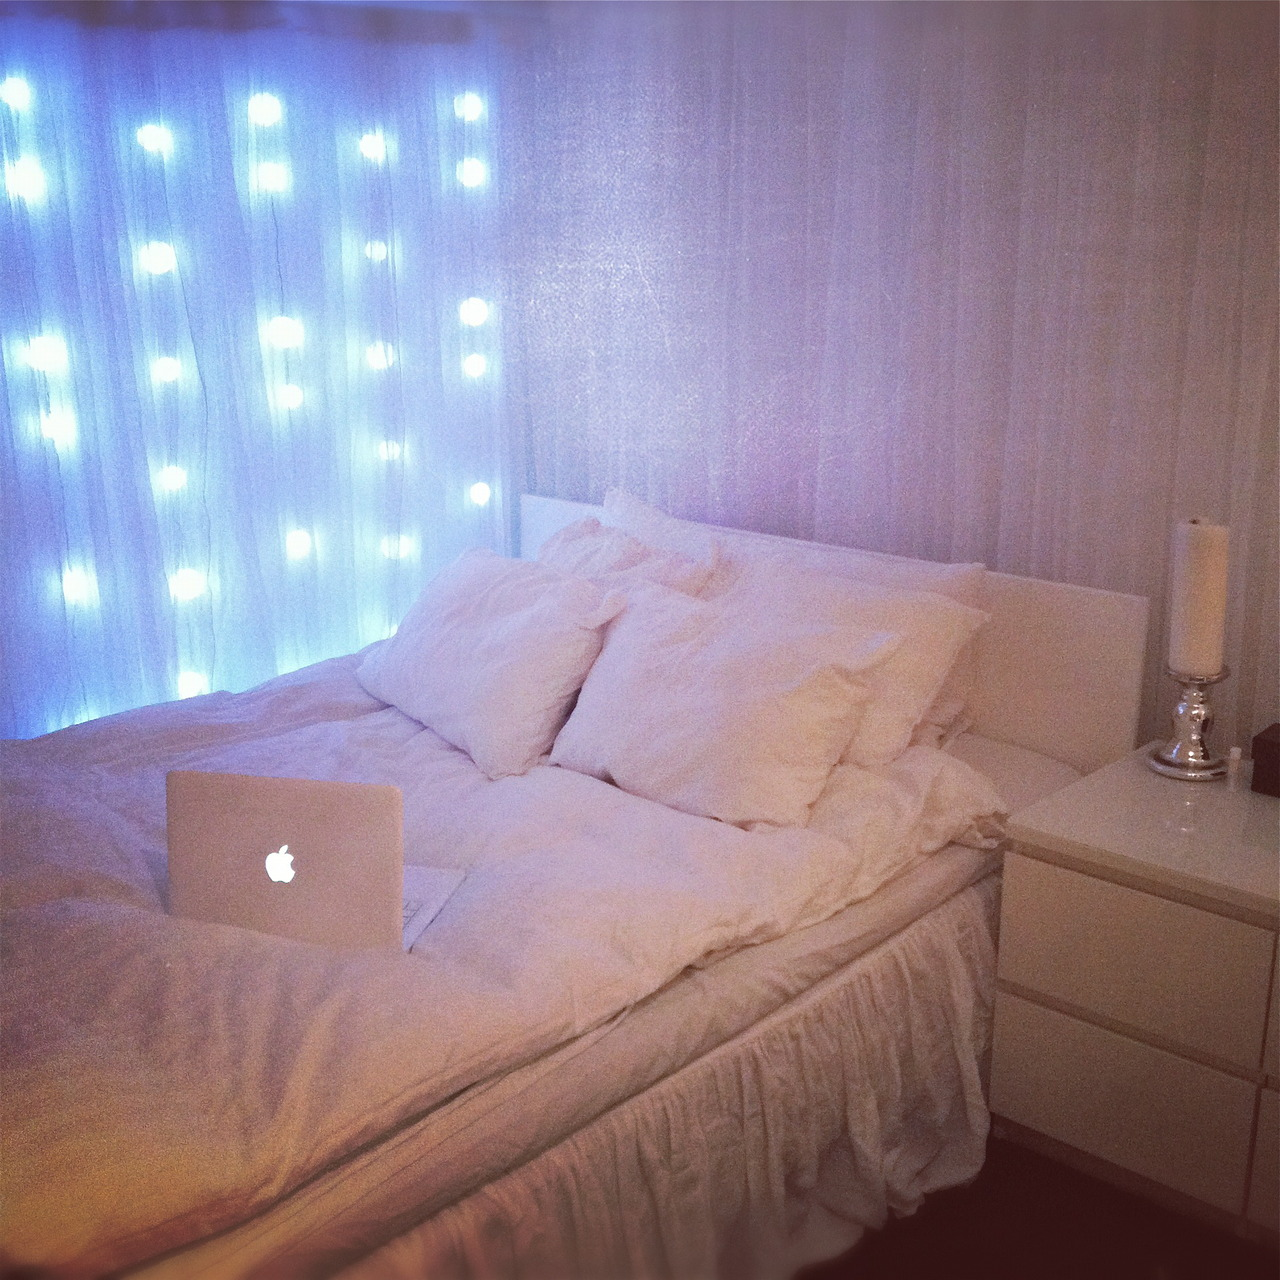 Bedroom fairy lights tumblr - Wall Fairy Lights Photo 8 Wall Fairy Lights Warisan Lighting Wall Fairy Lights Bedroomfairy Lights Bedroom